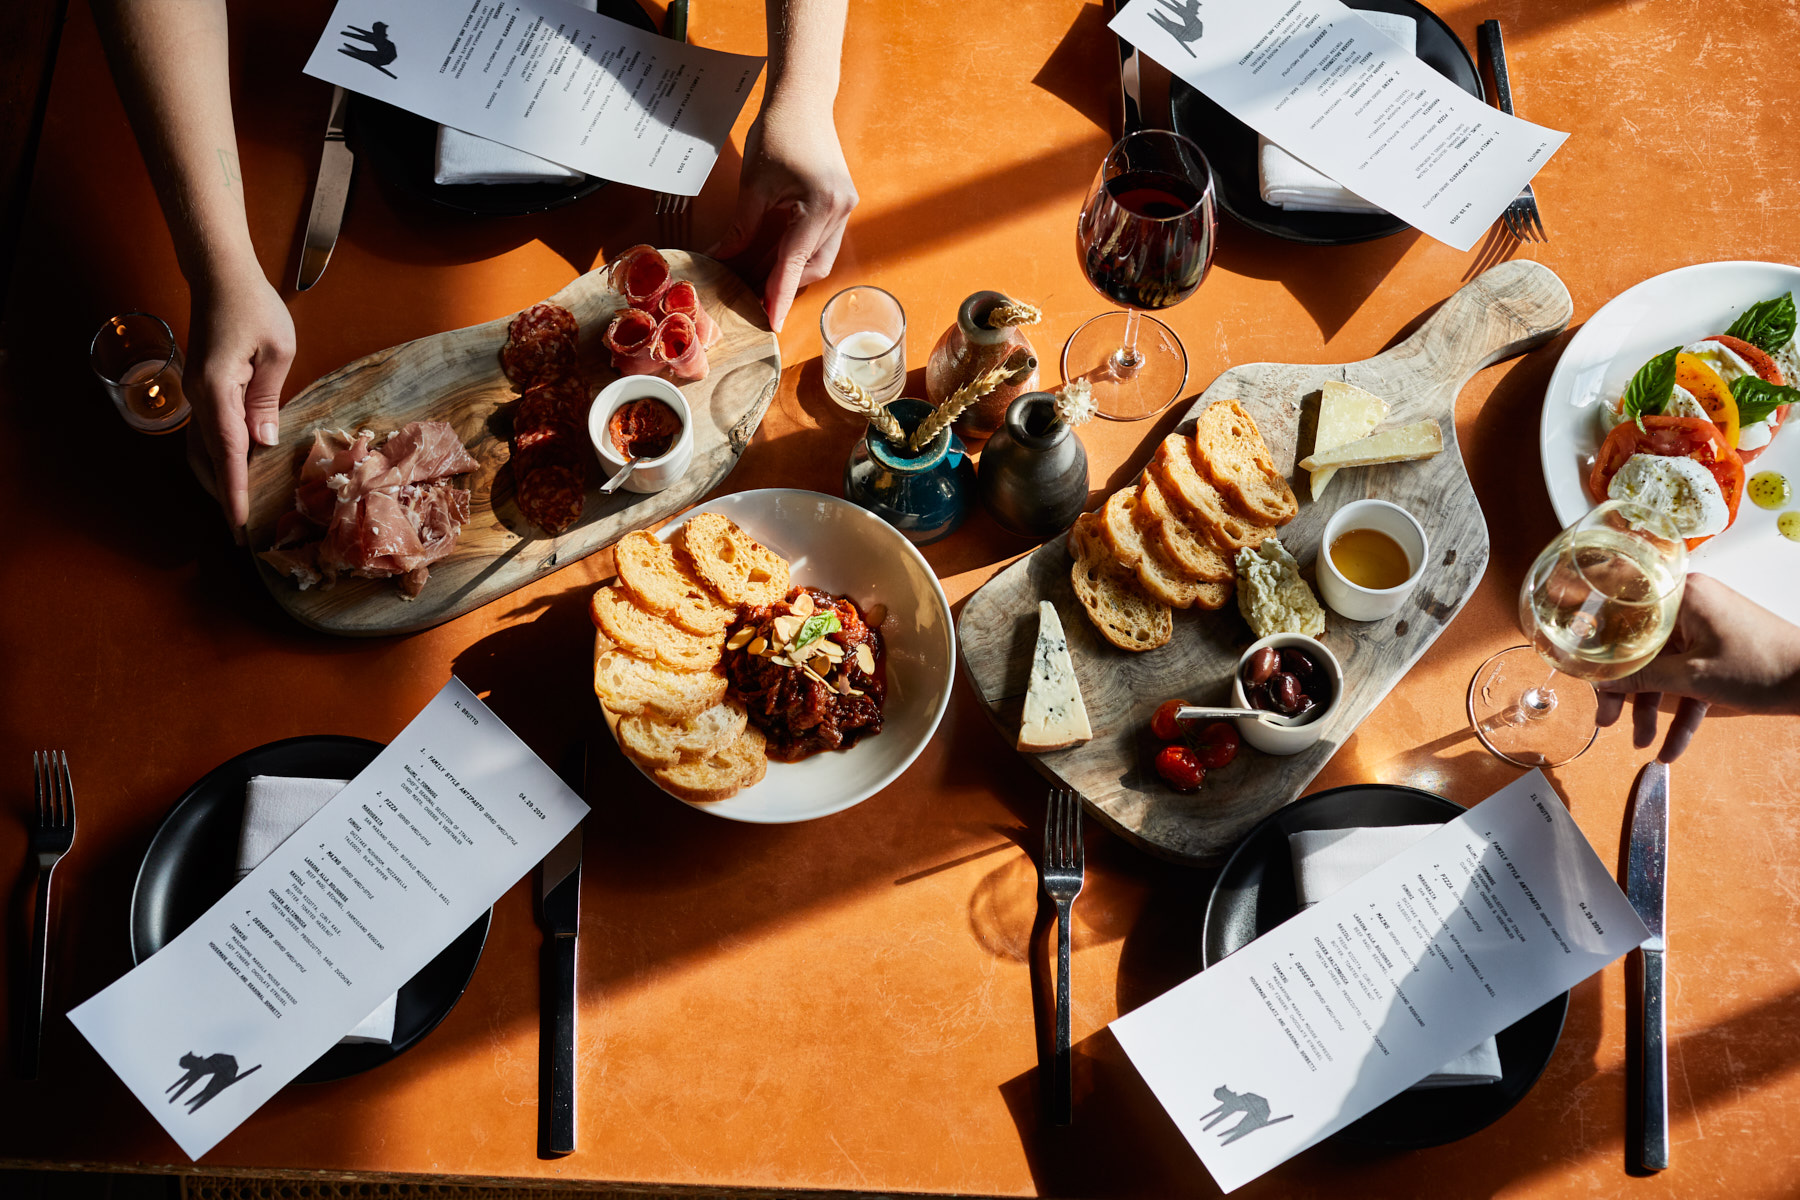 Jody Horton's shot from above as a server lays a tray of food on a table set for four